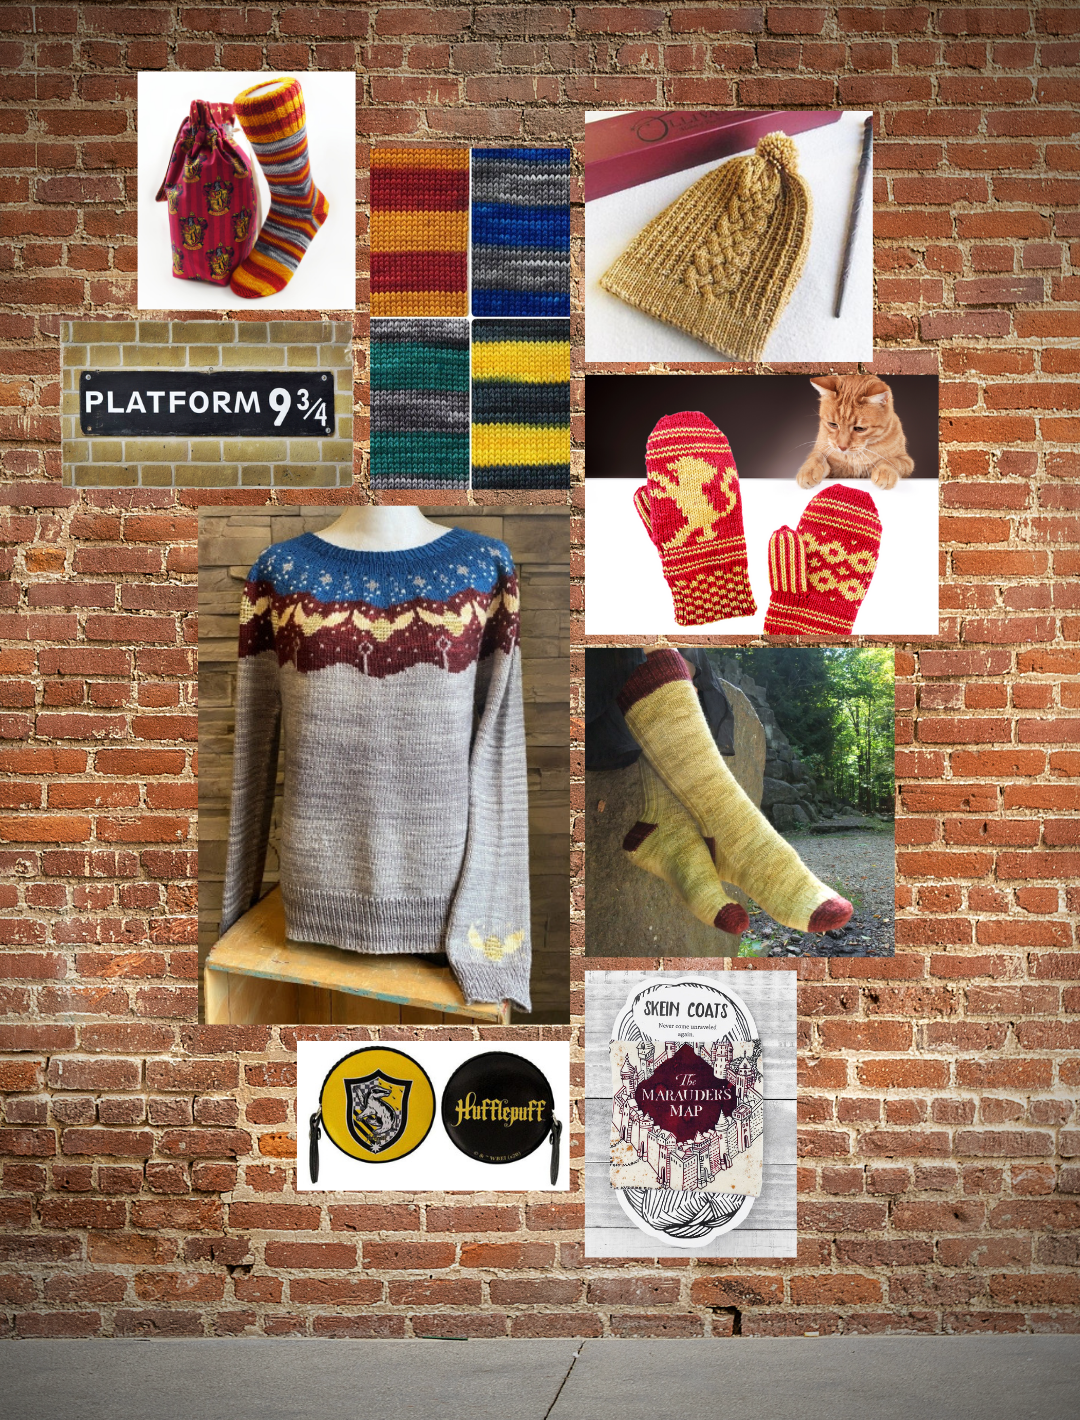 Harry potter yarns, patterns, knitting kits and products